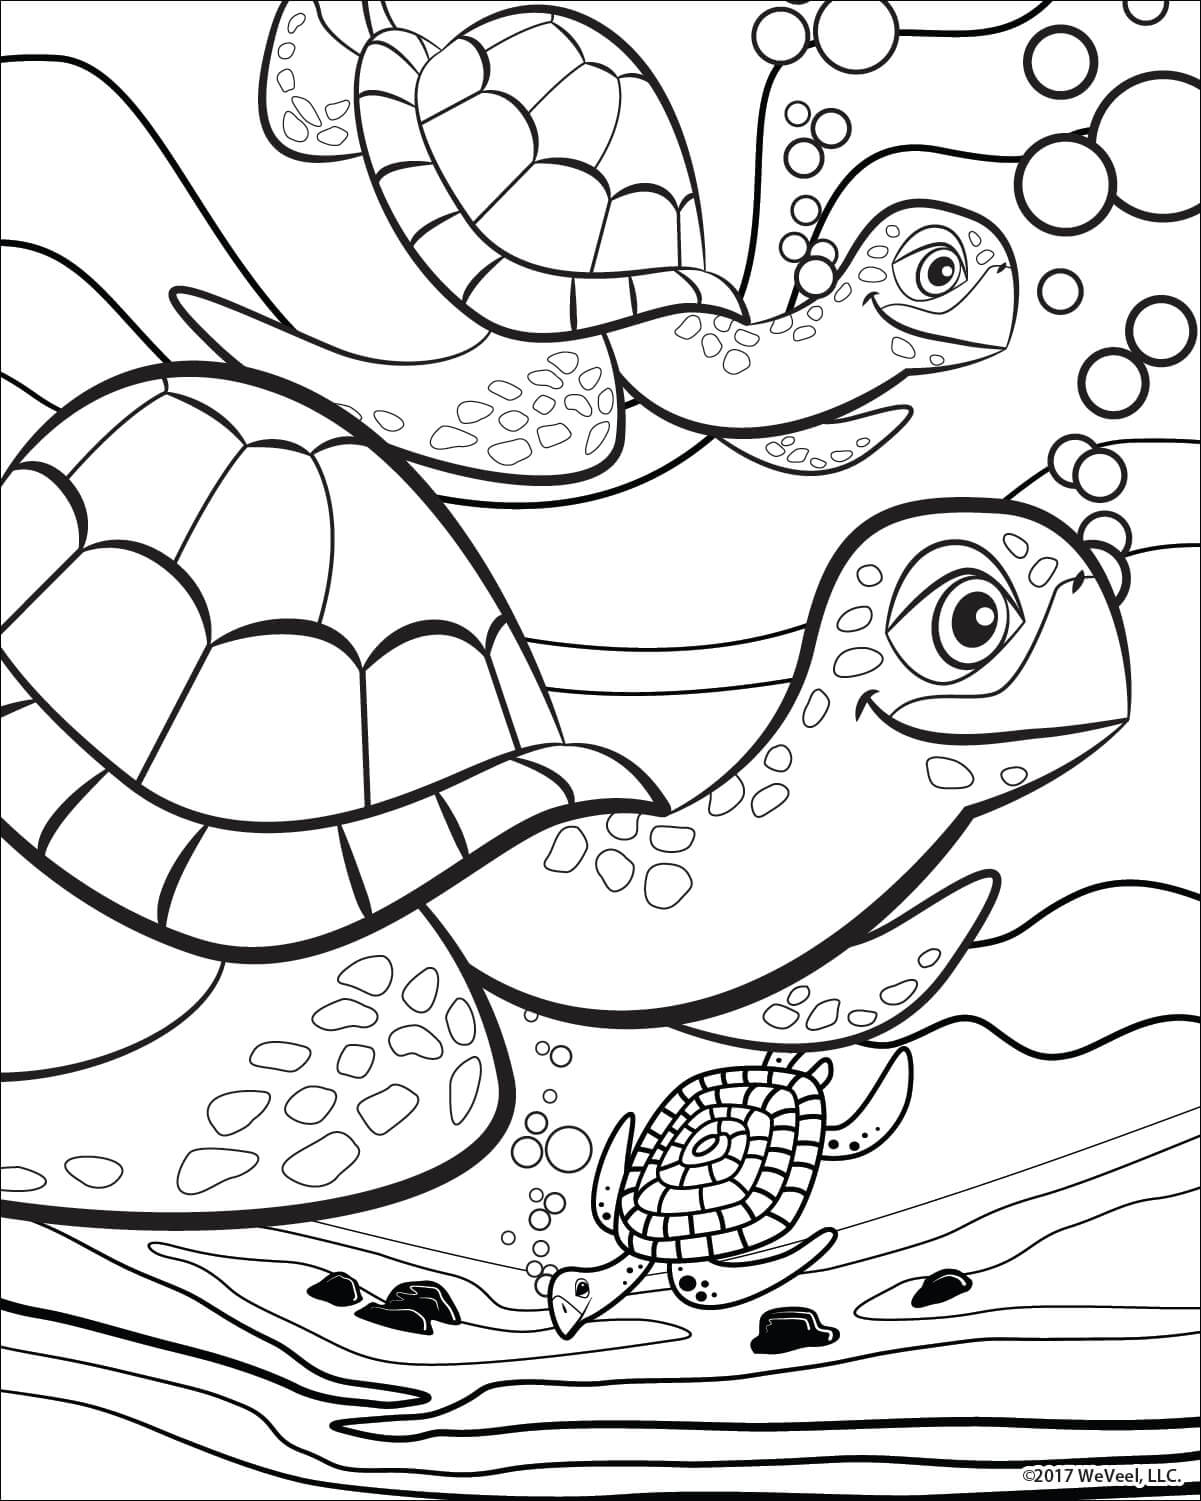 The 10 Best Colouring Pages For Kids For Long Days At Home Paul Paula